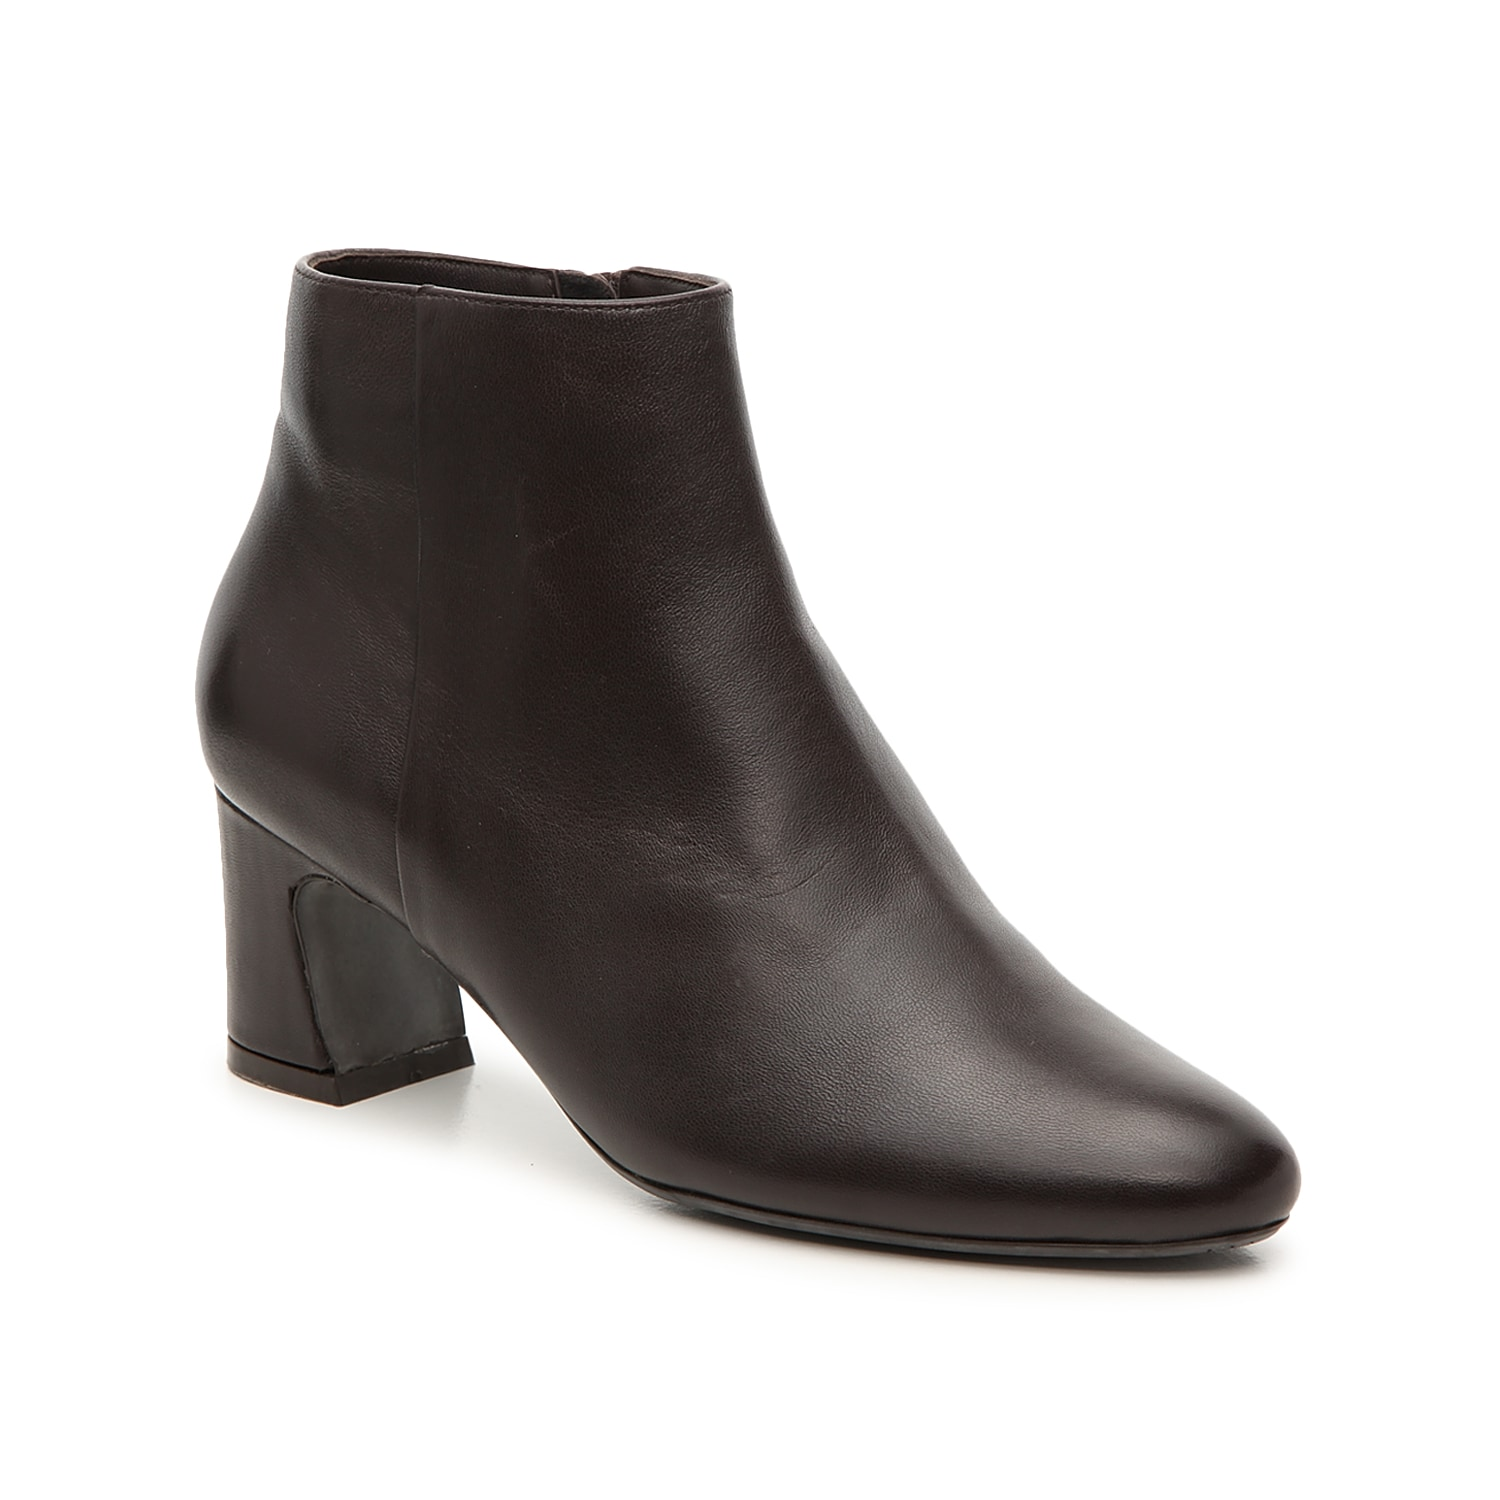 Smooth styling defines the Dany ankle boot from VANELi. These booties are boosted by a mid-rise heel that\\\'s slightly flared at the base.